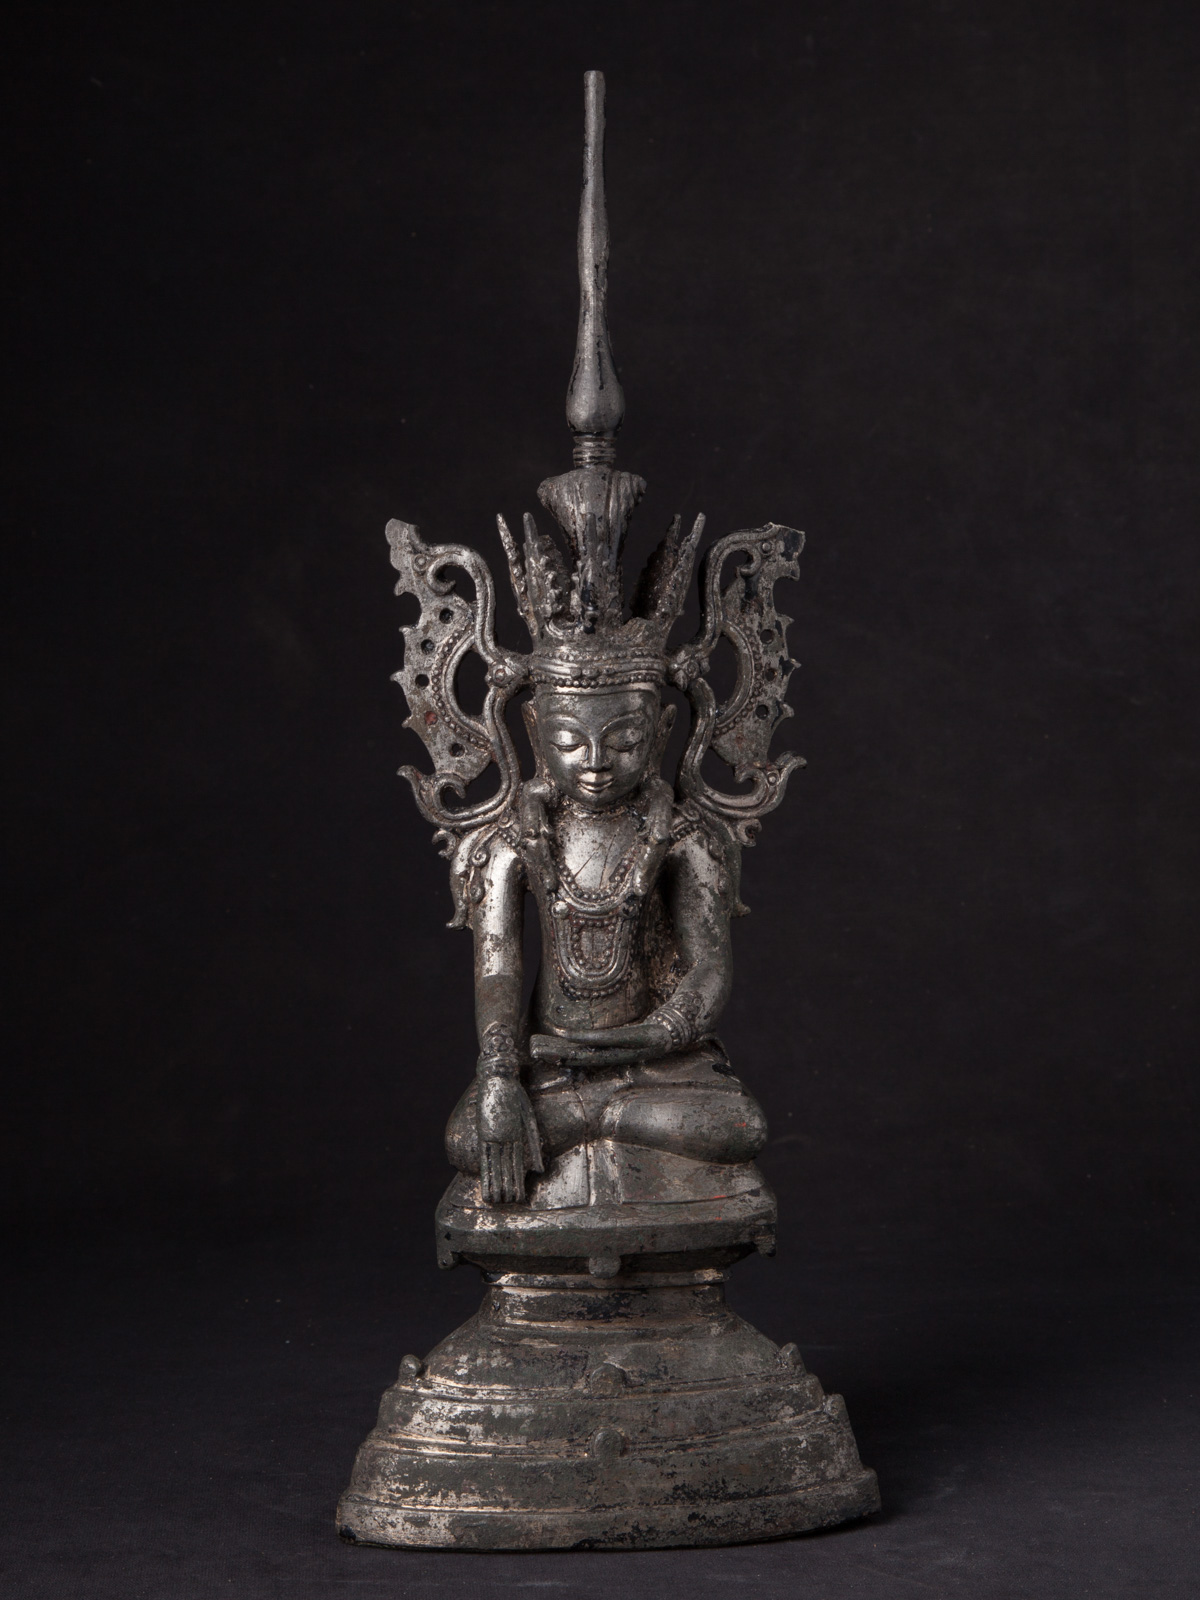 Antique bronze crowned Buddha statue from Burma